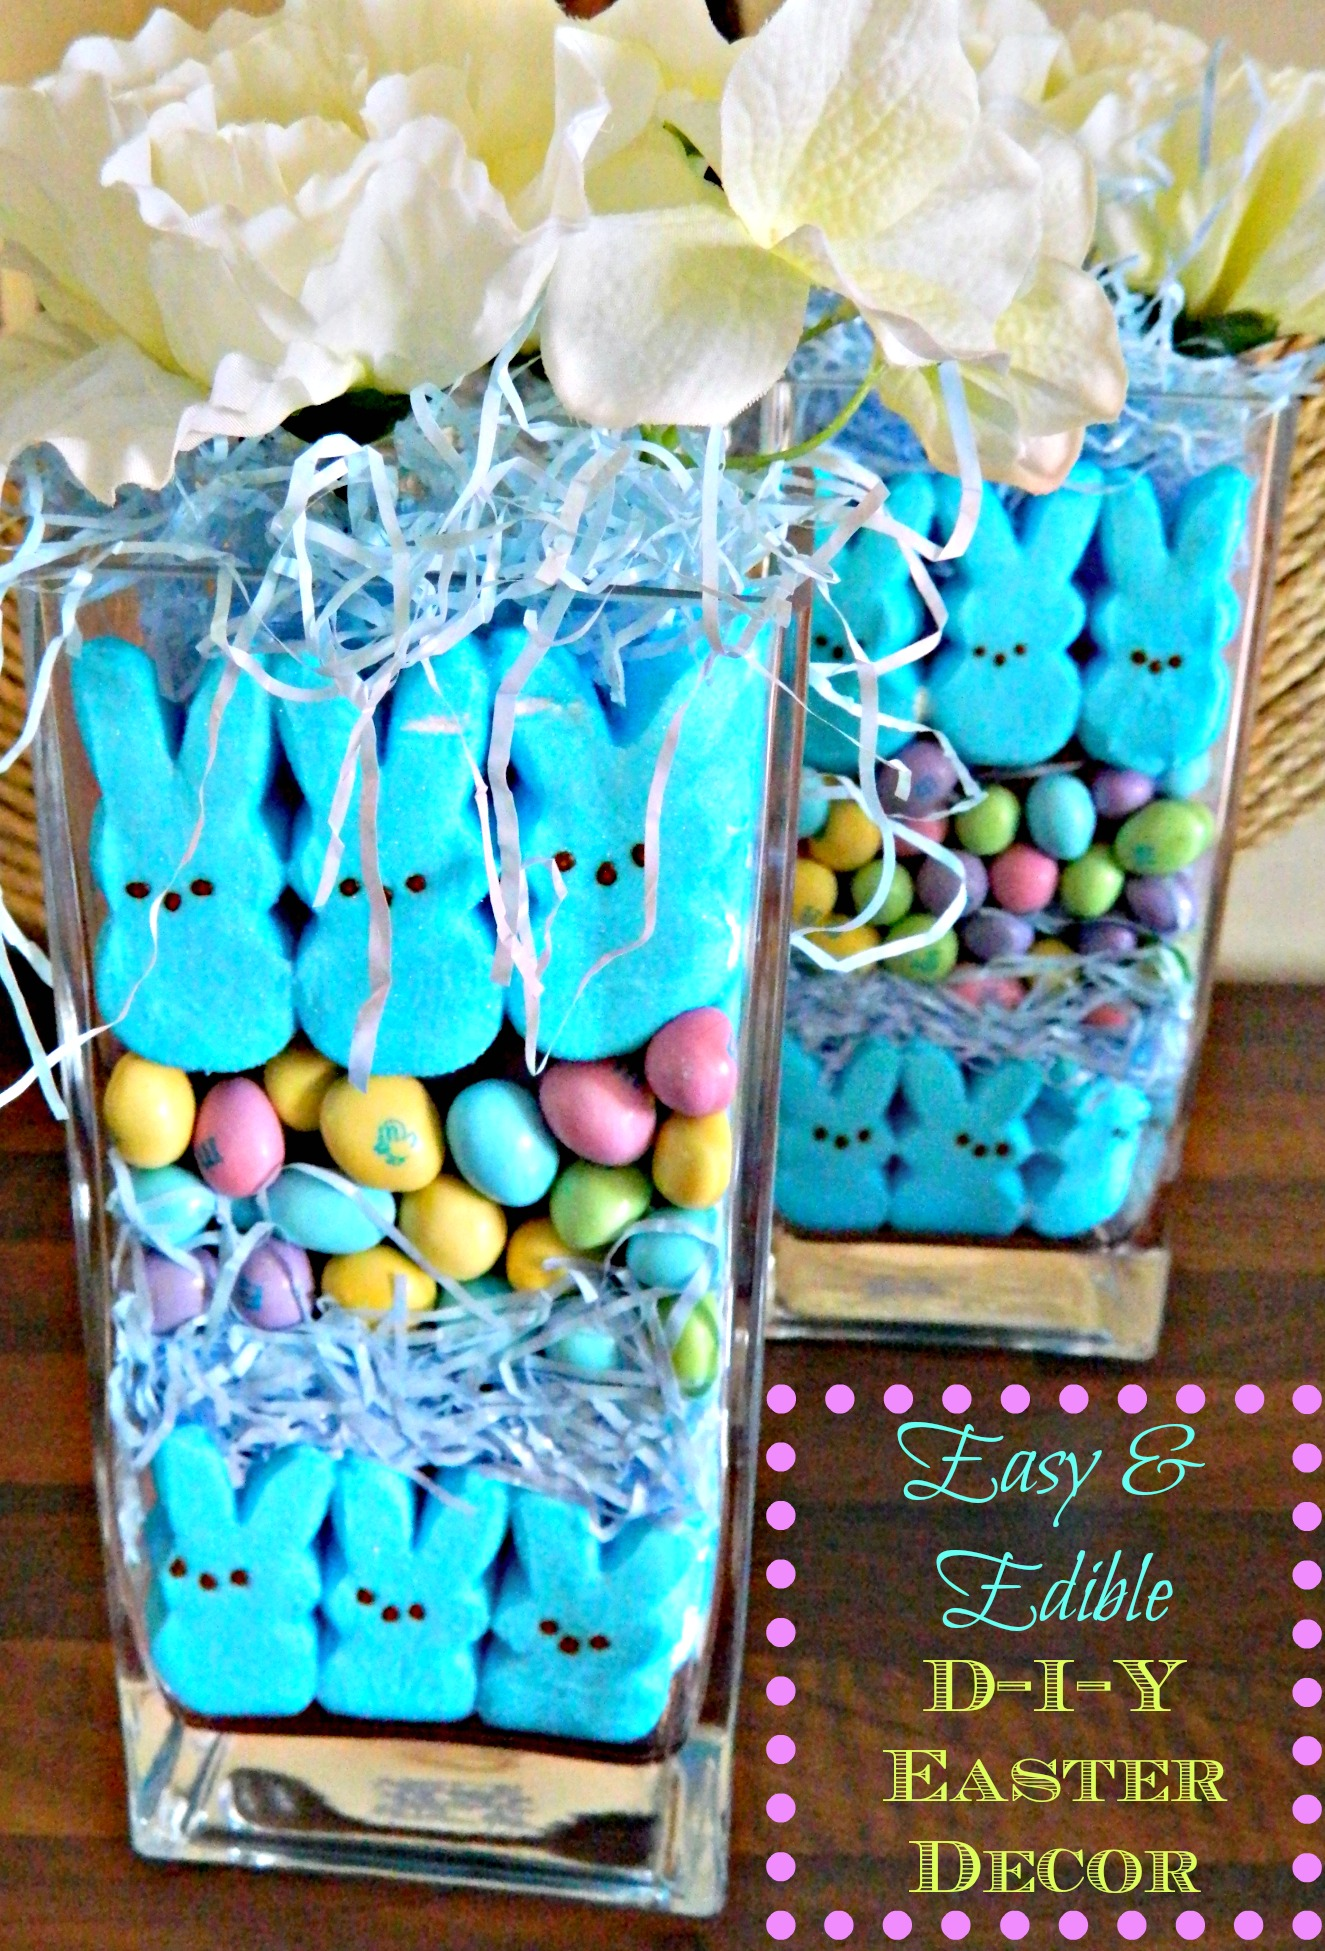 Edible Easter decorations. So cute!